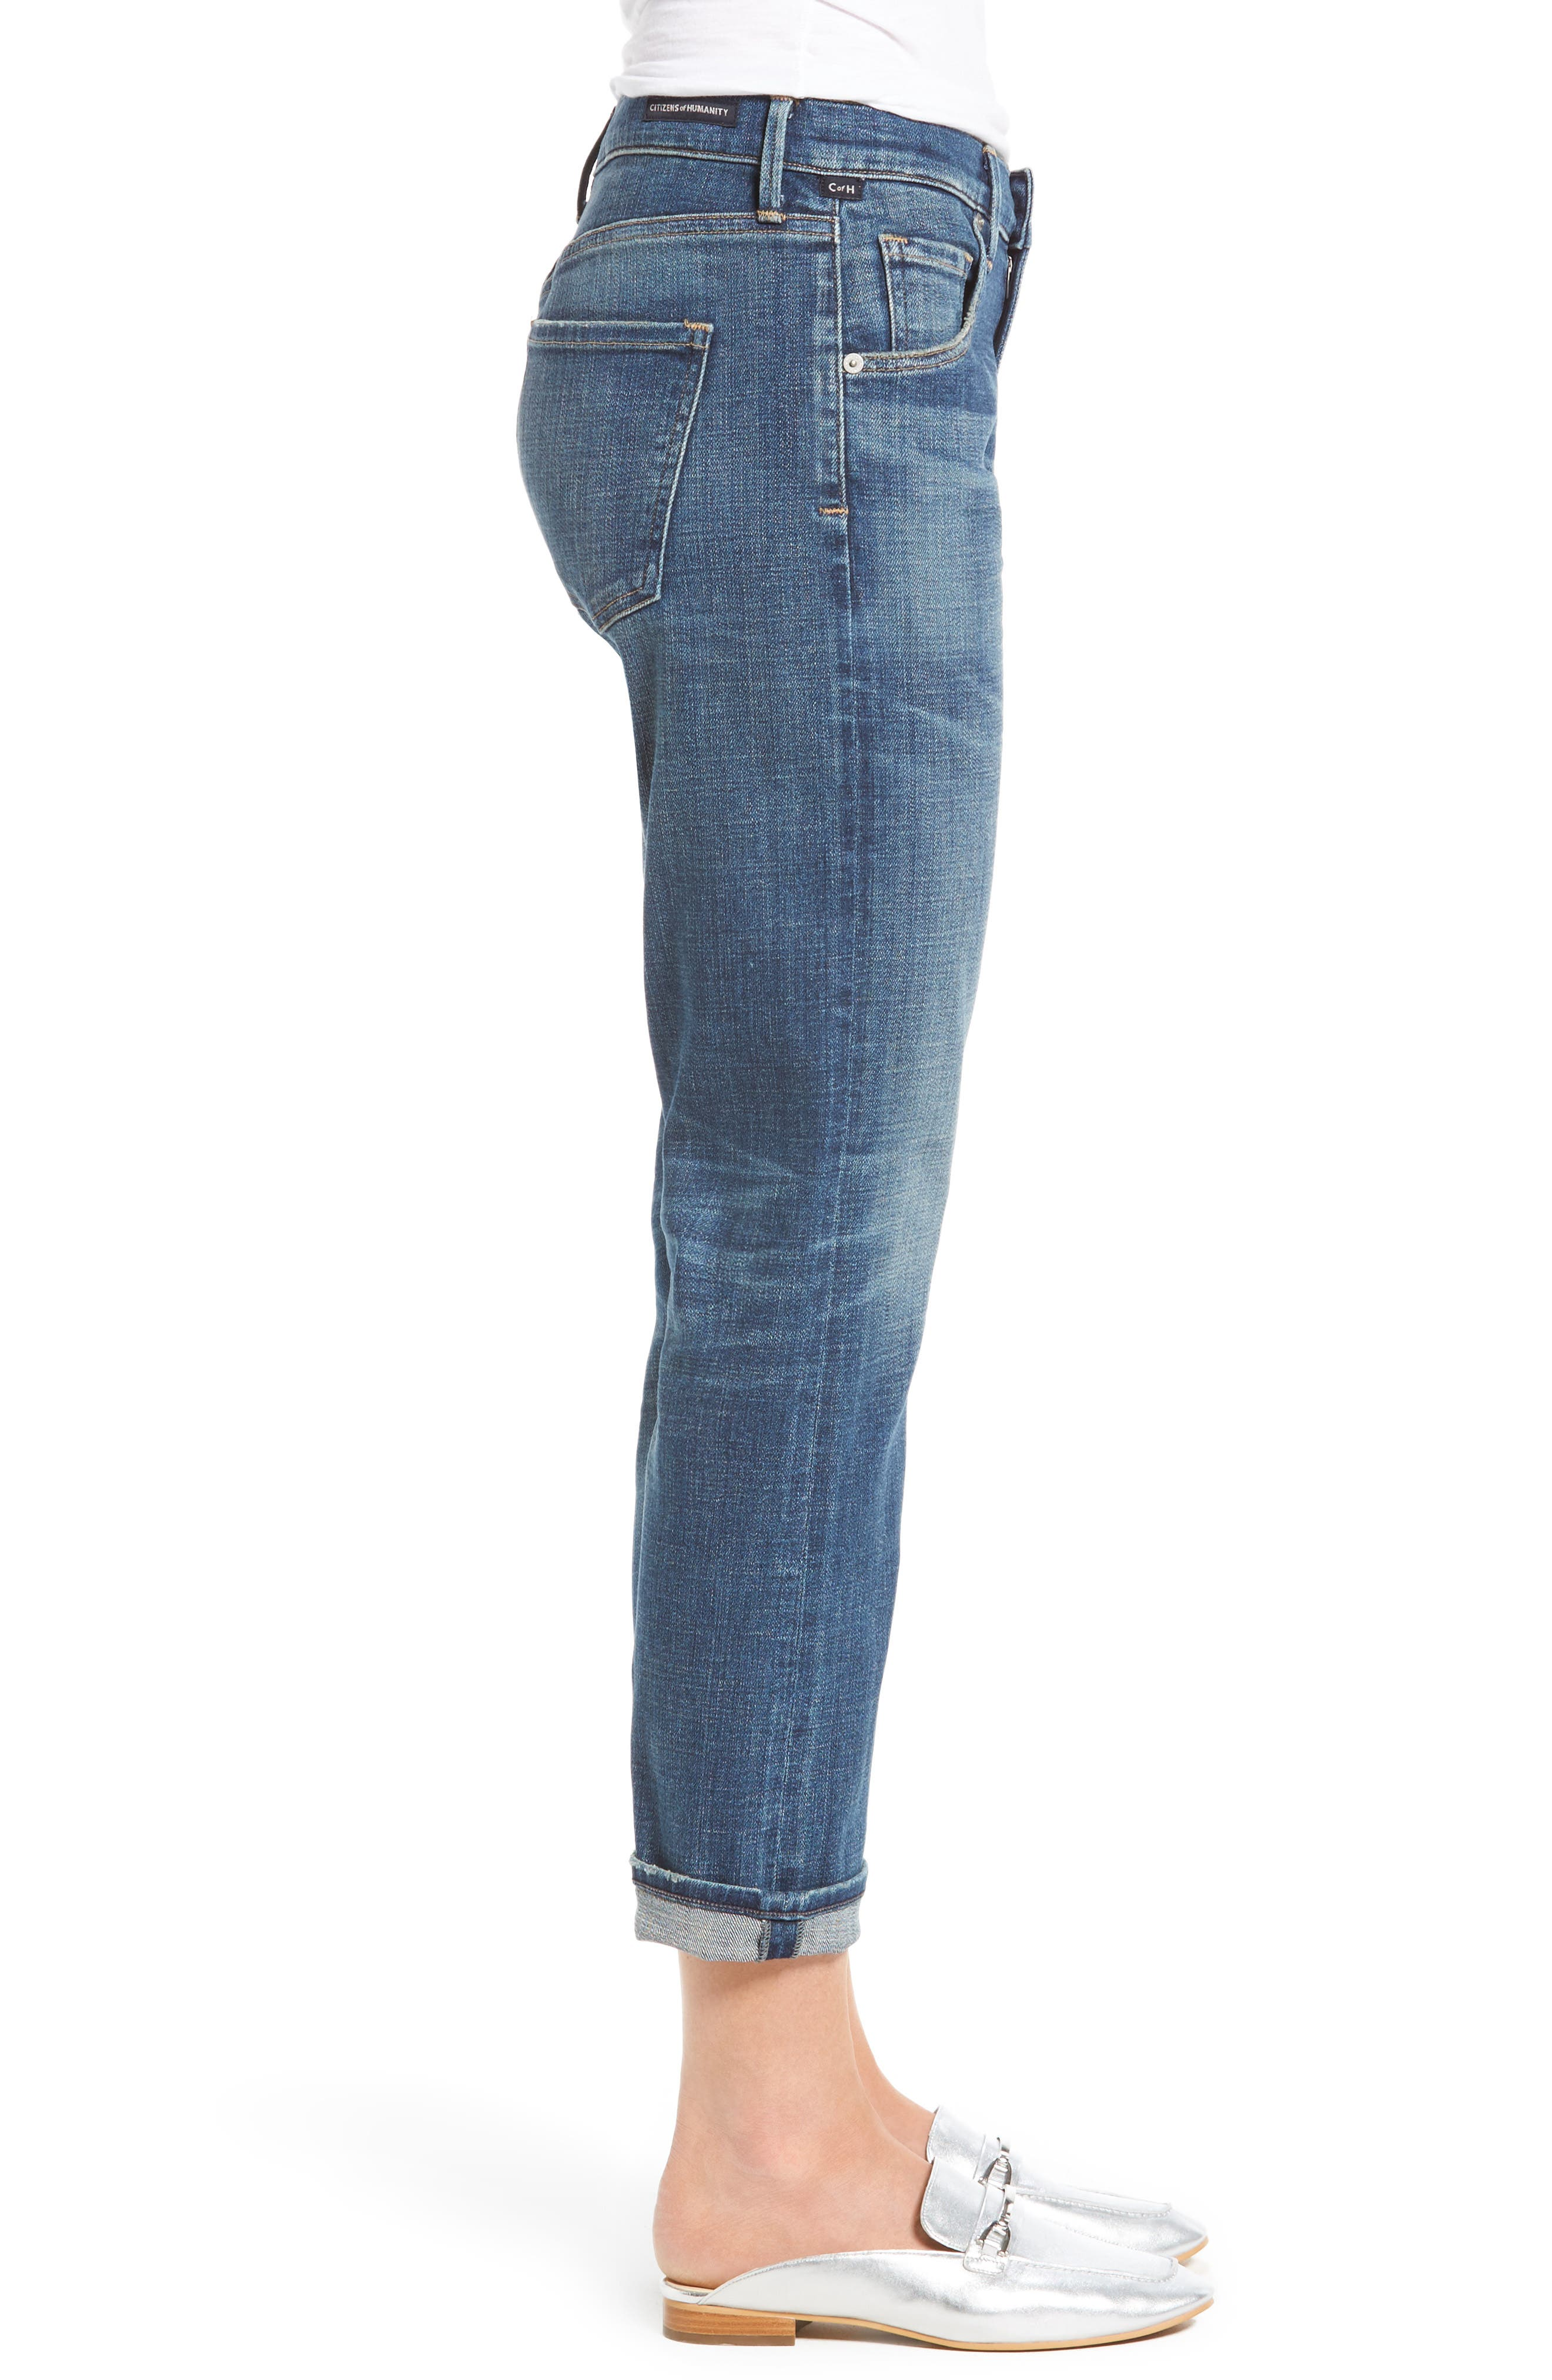 Alternate Image 3  - Citizens of Humanity Emerson Slim Boyfriend Jeans (Crusade)